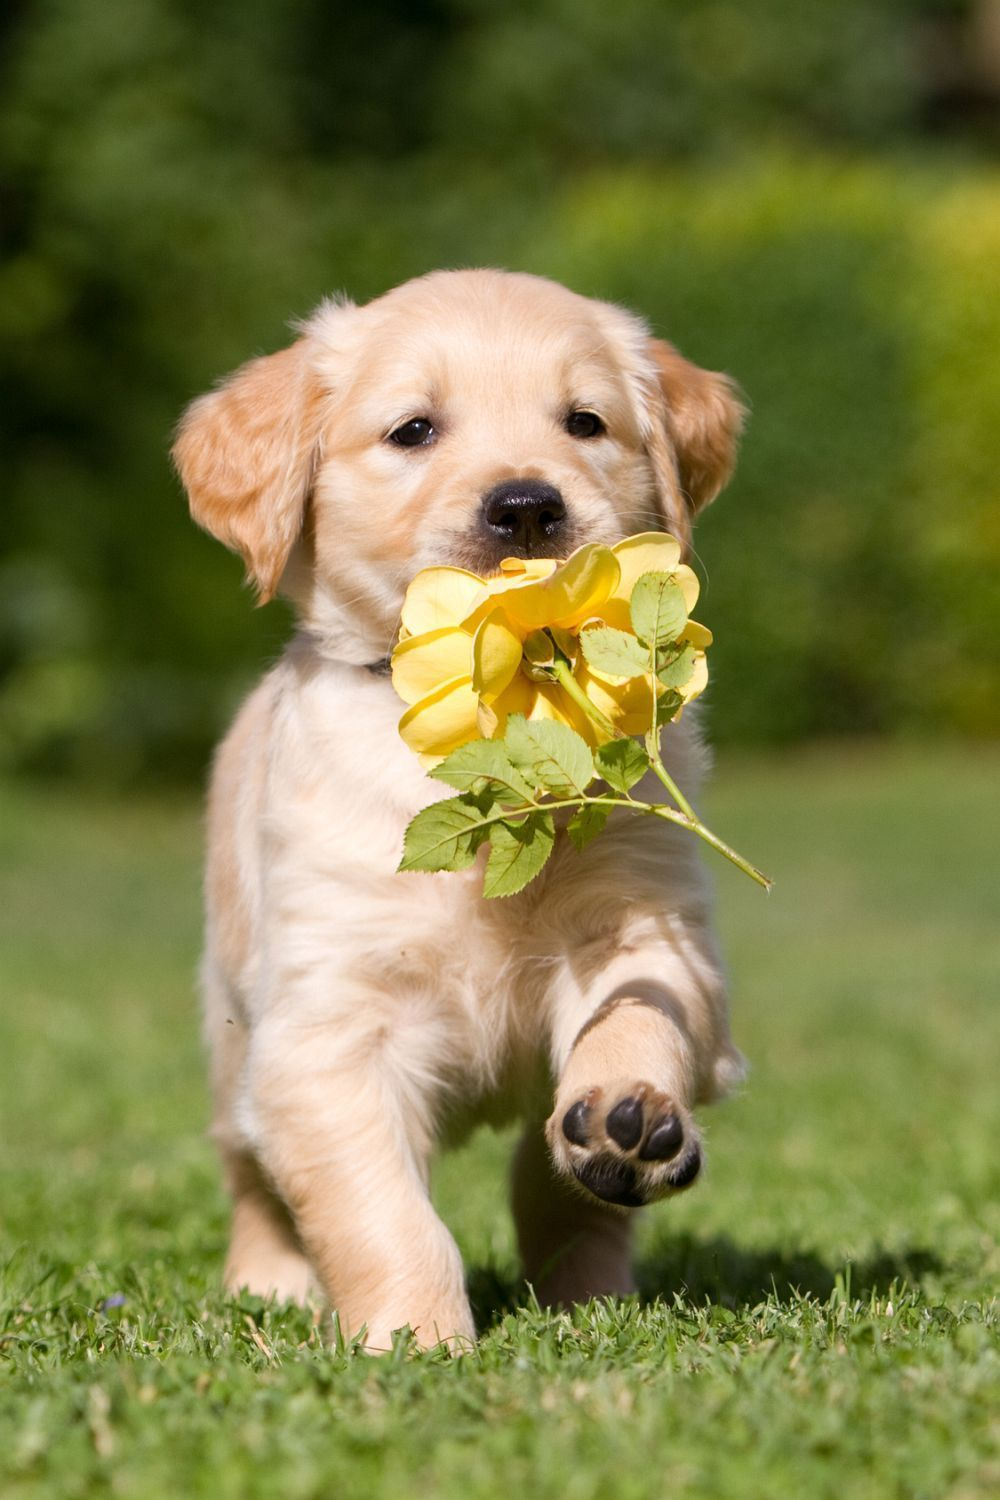 Flowers For My Mommy D 3 3 3 3 Adorable Dogs Cute